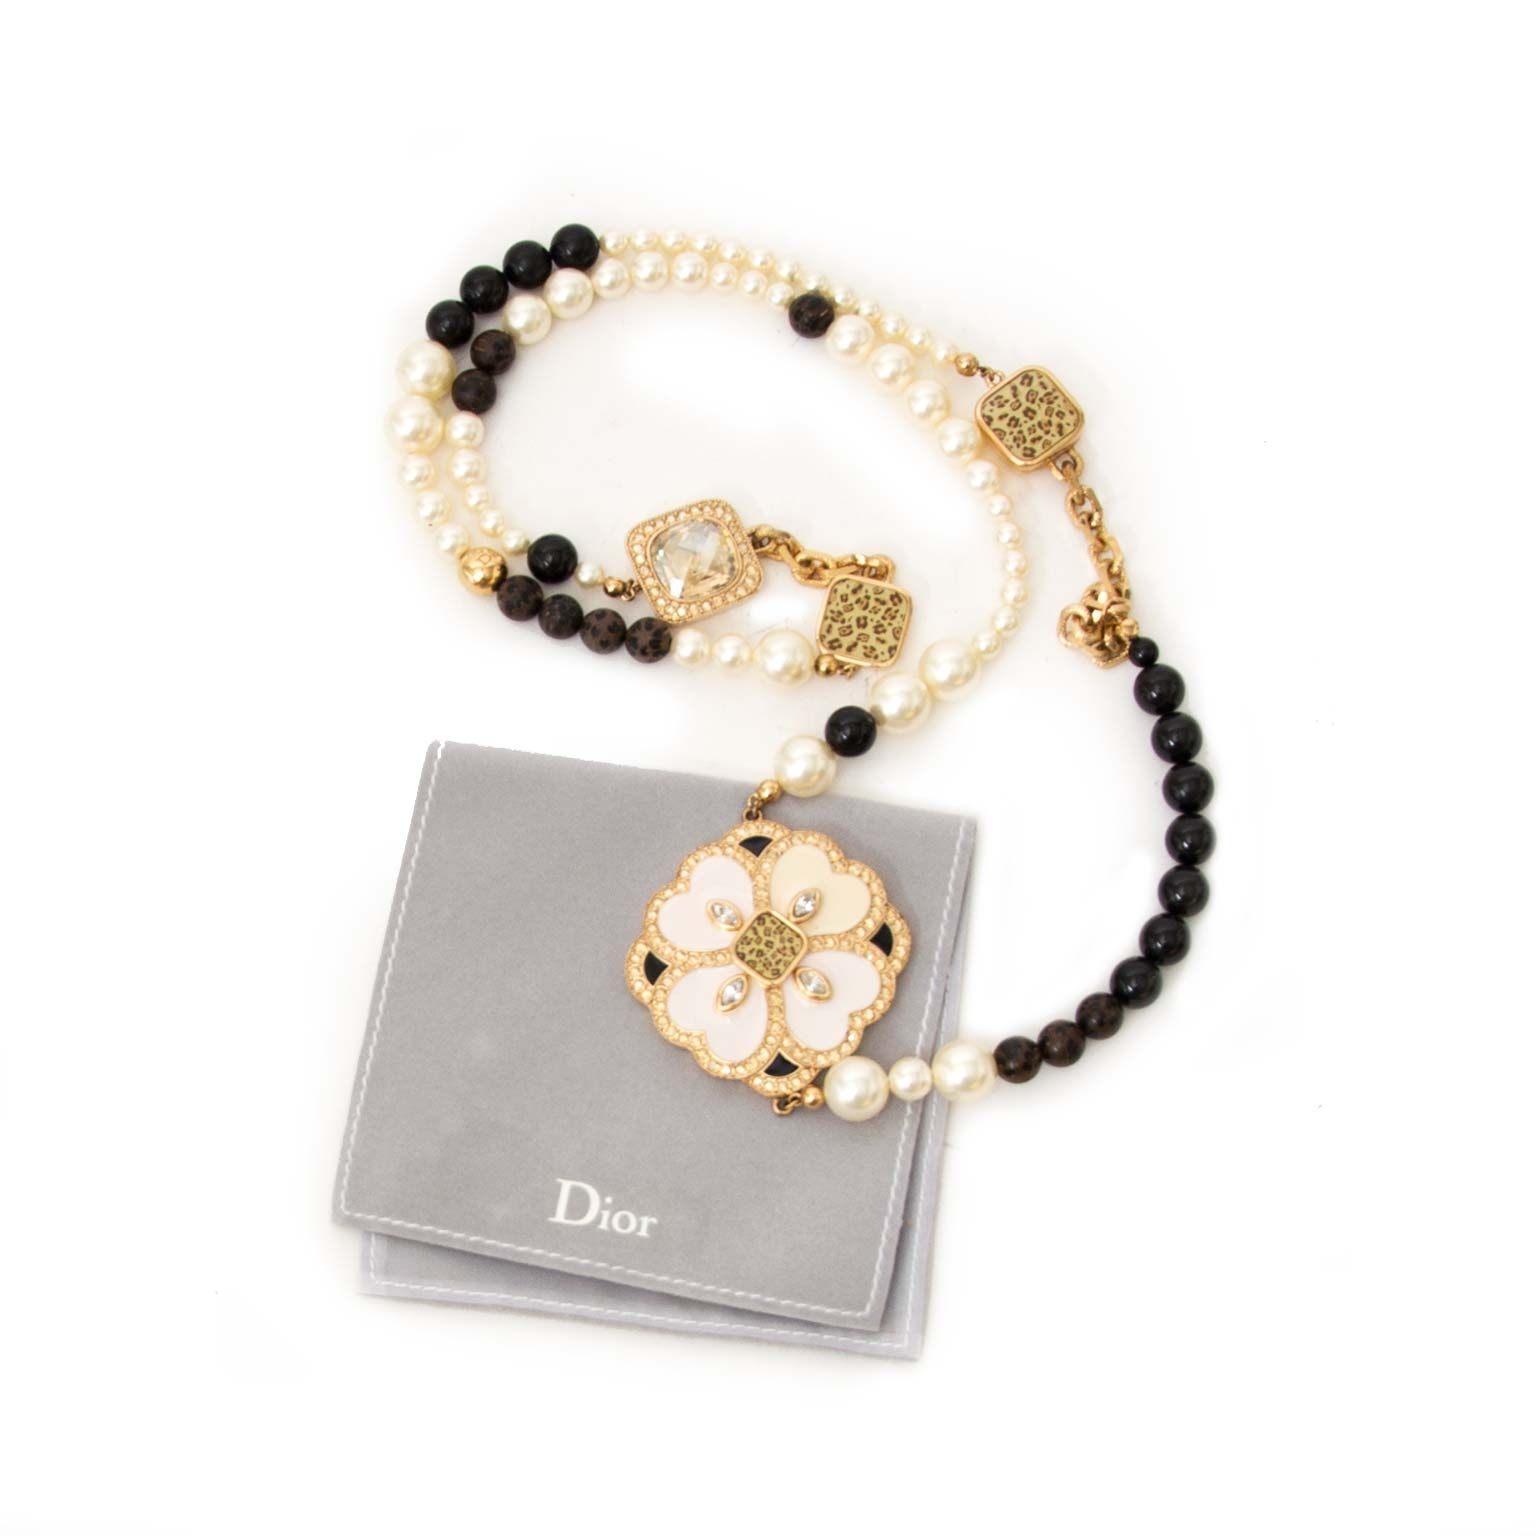 acheter en ligne seconde main Dior Faux Pearl and Leopard Crystal Flower Necklace